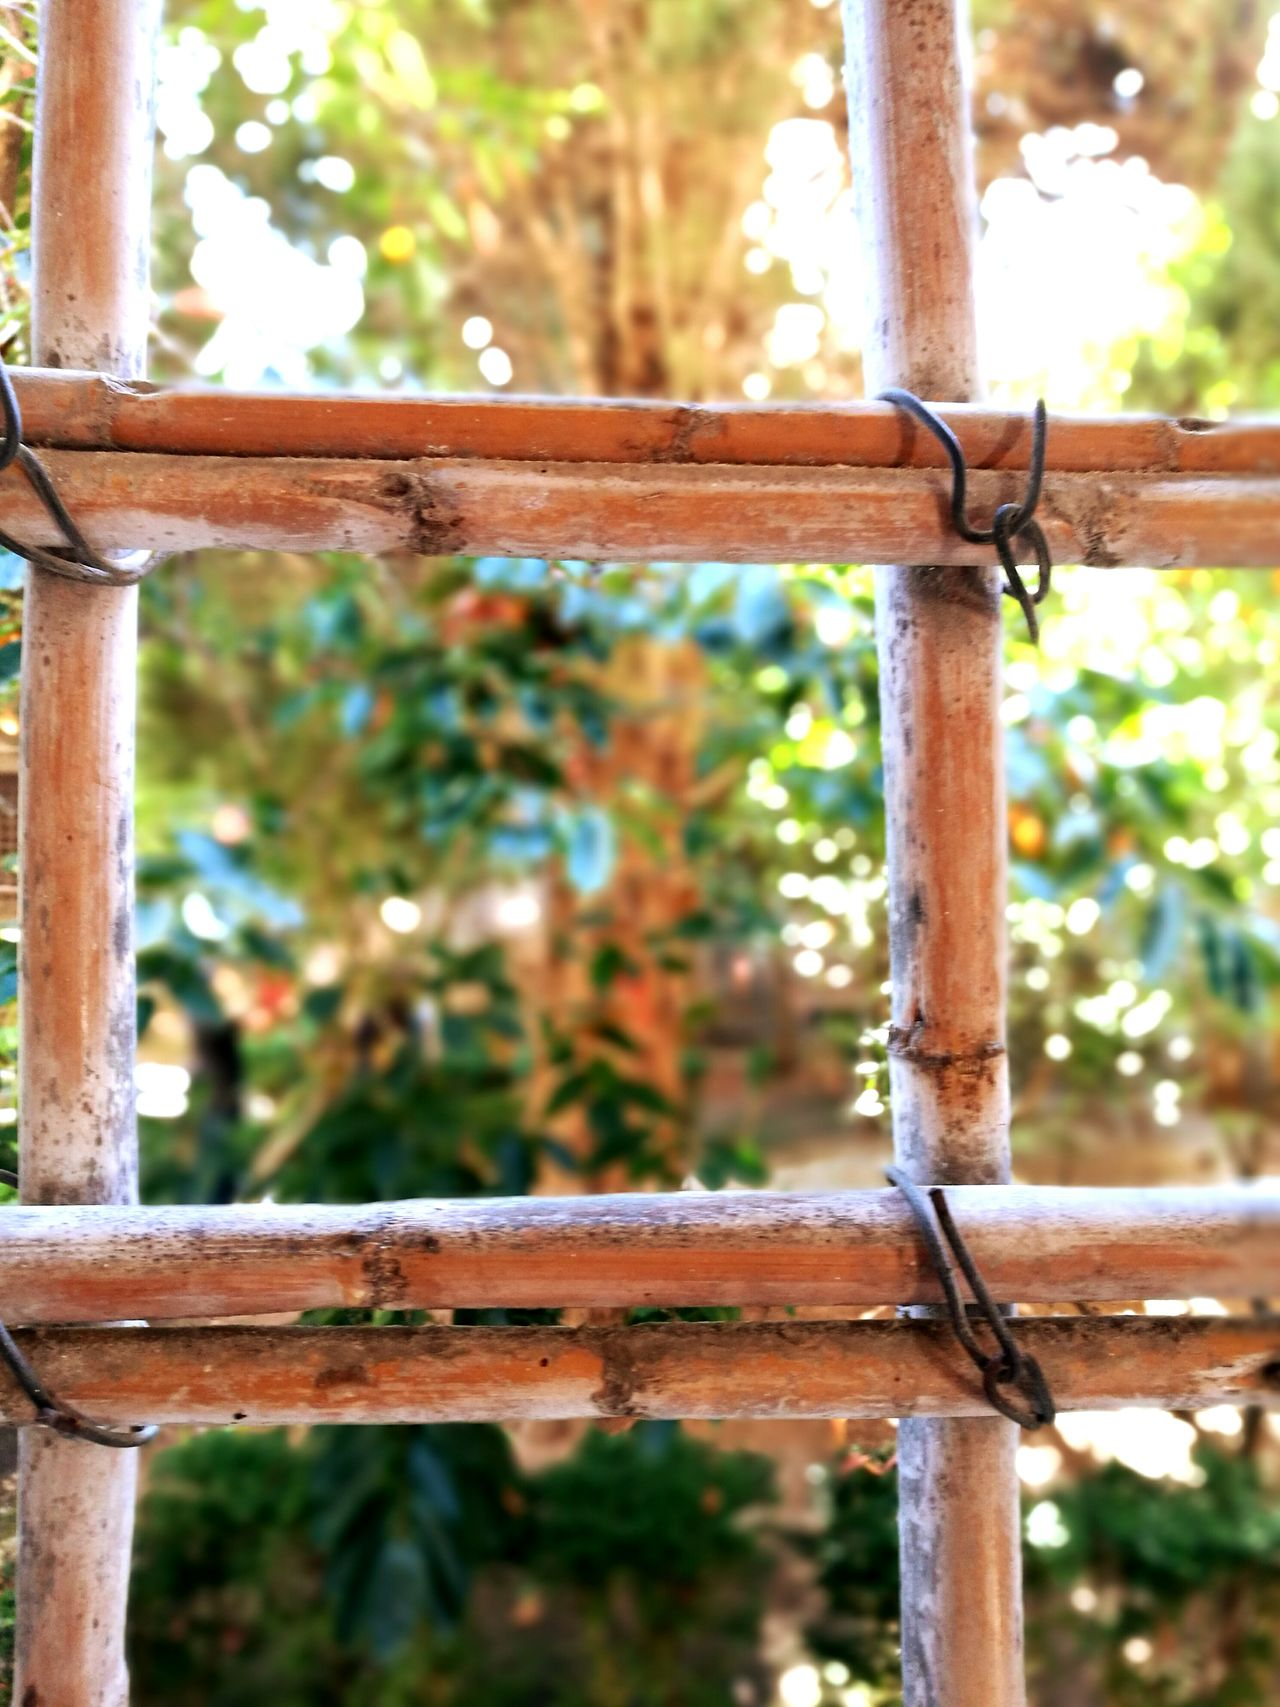 Trapped behind the fence of live ... Focus On Foreground Wood - Material Wooden Fence Window Trapped Inside Cloister Garden Close-up No People Prison